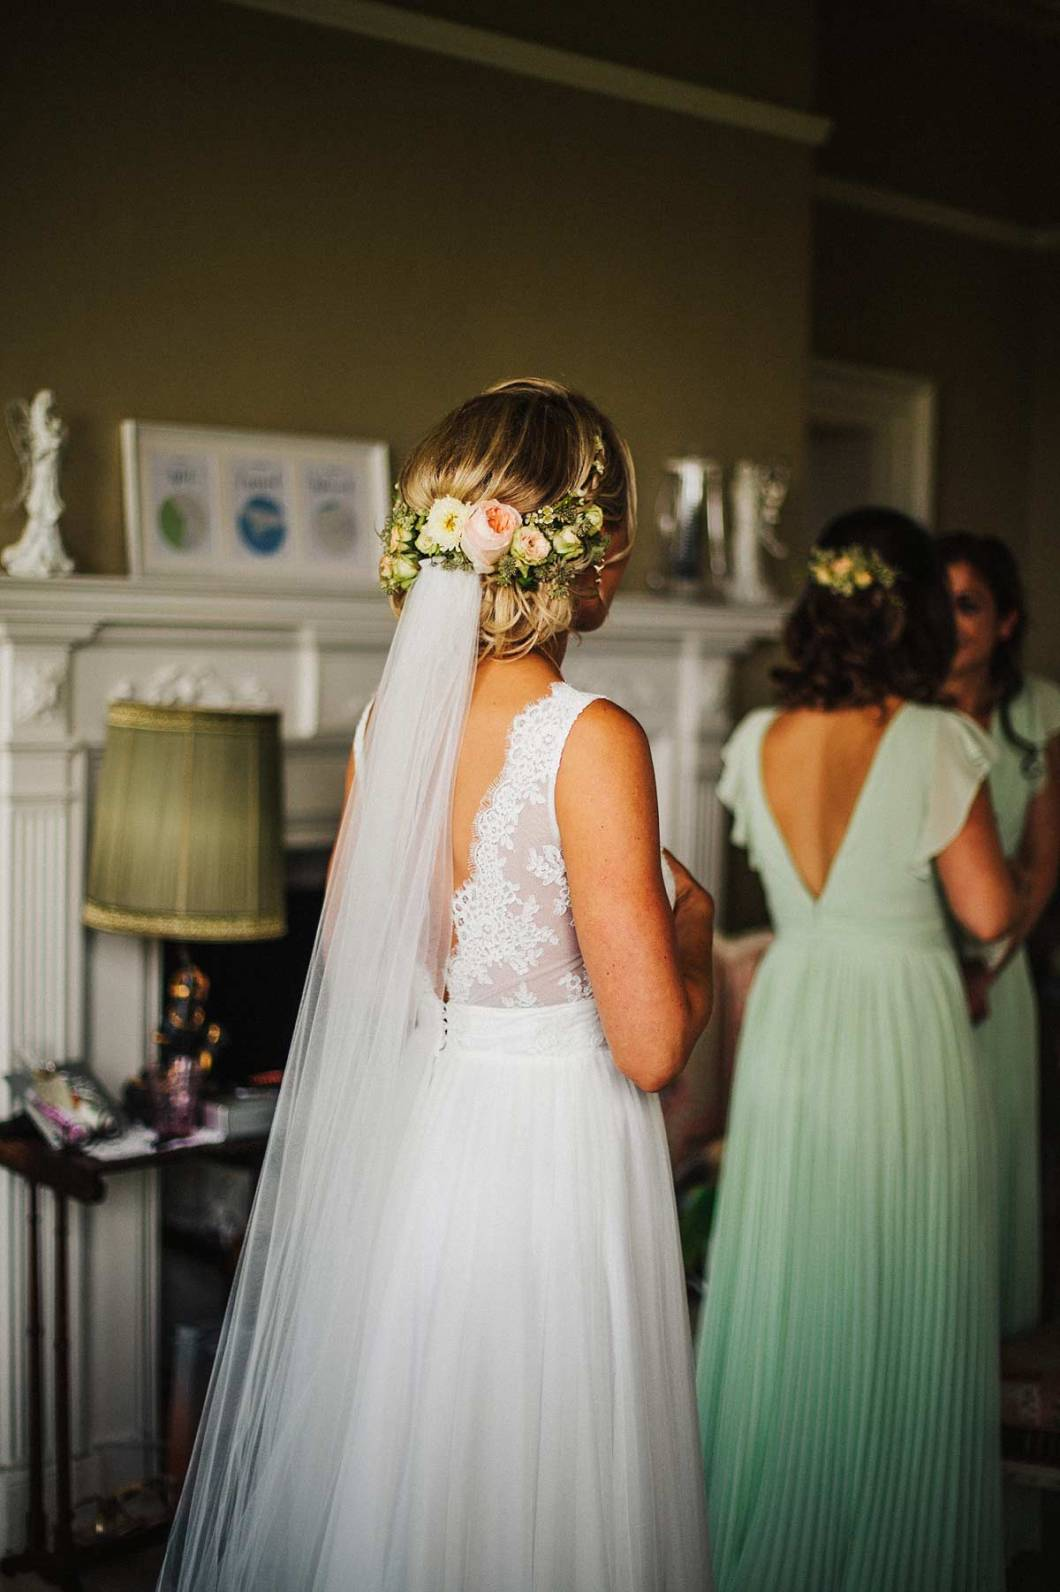 Beautiful wedding hair and flowers